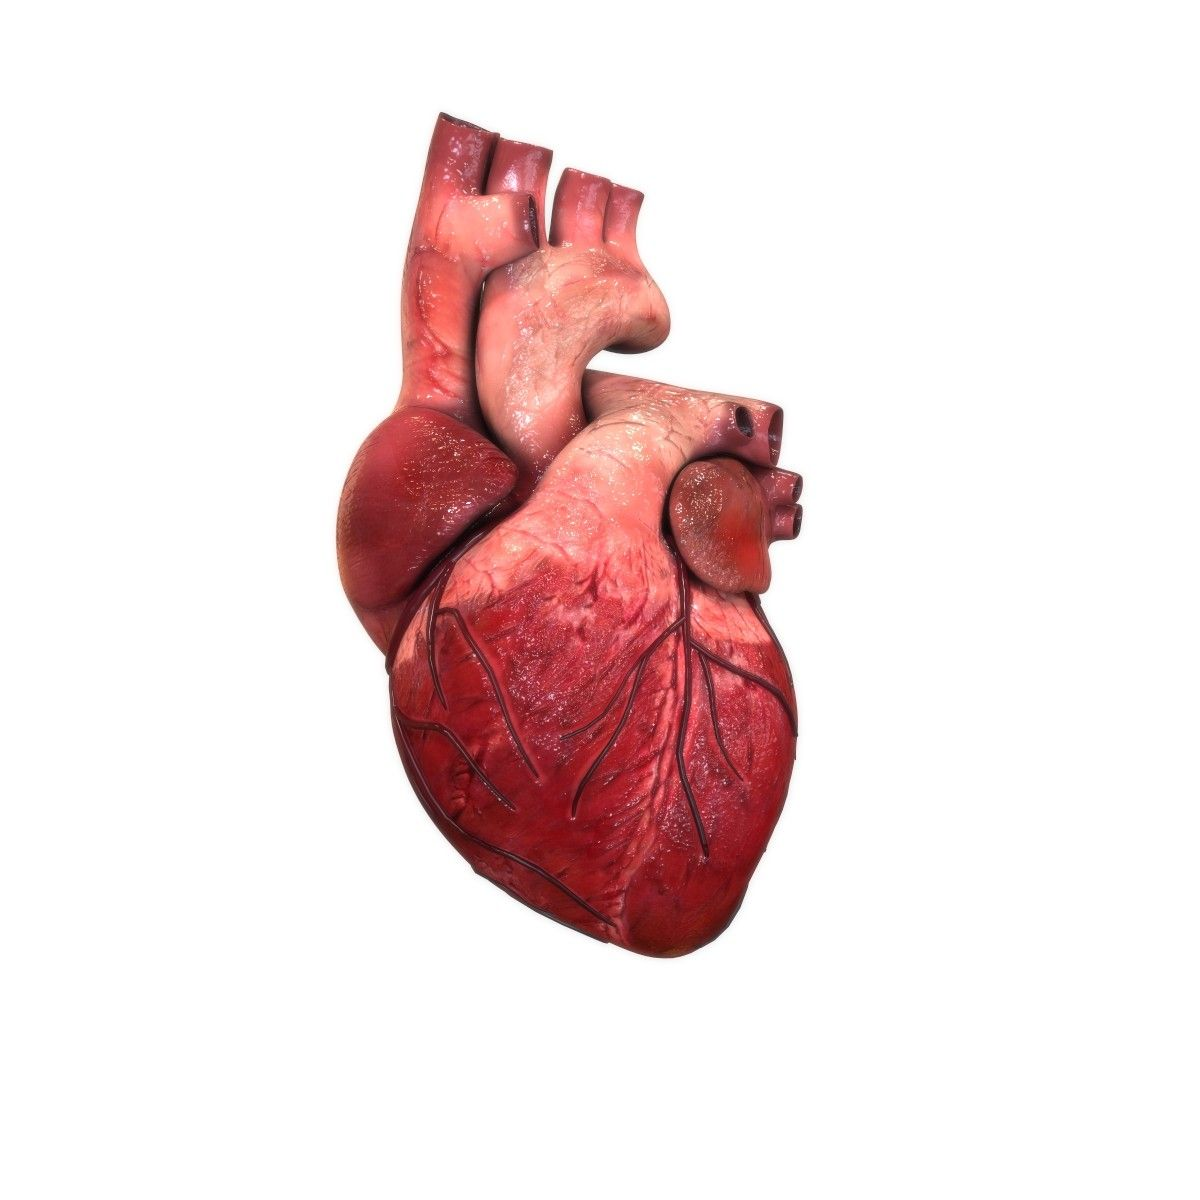 3d model human internal organs | Heart - Heart Organ | Pinterest ...